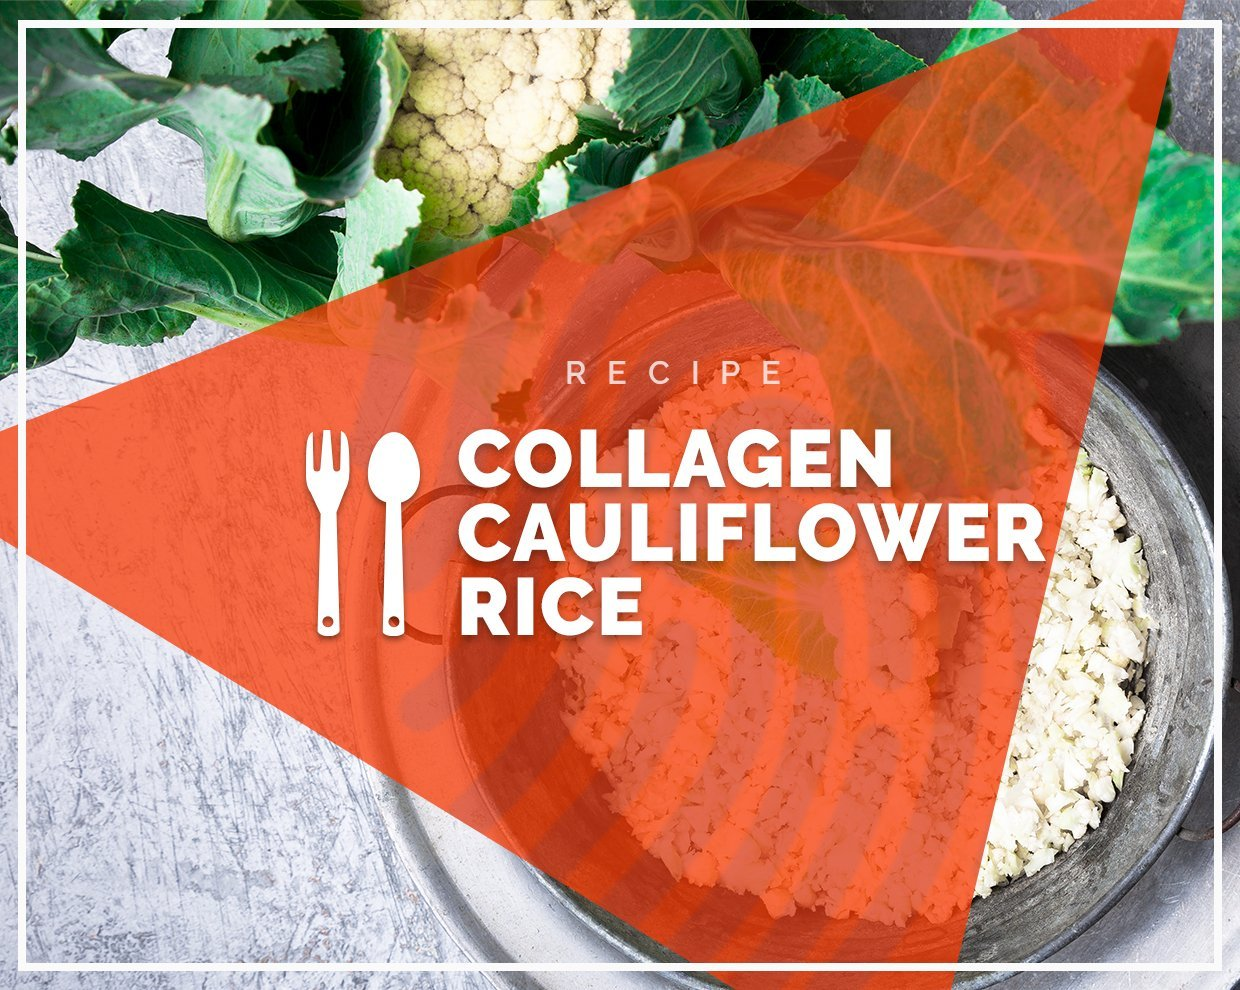 Collagen Cauliflower Rice